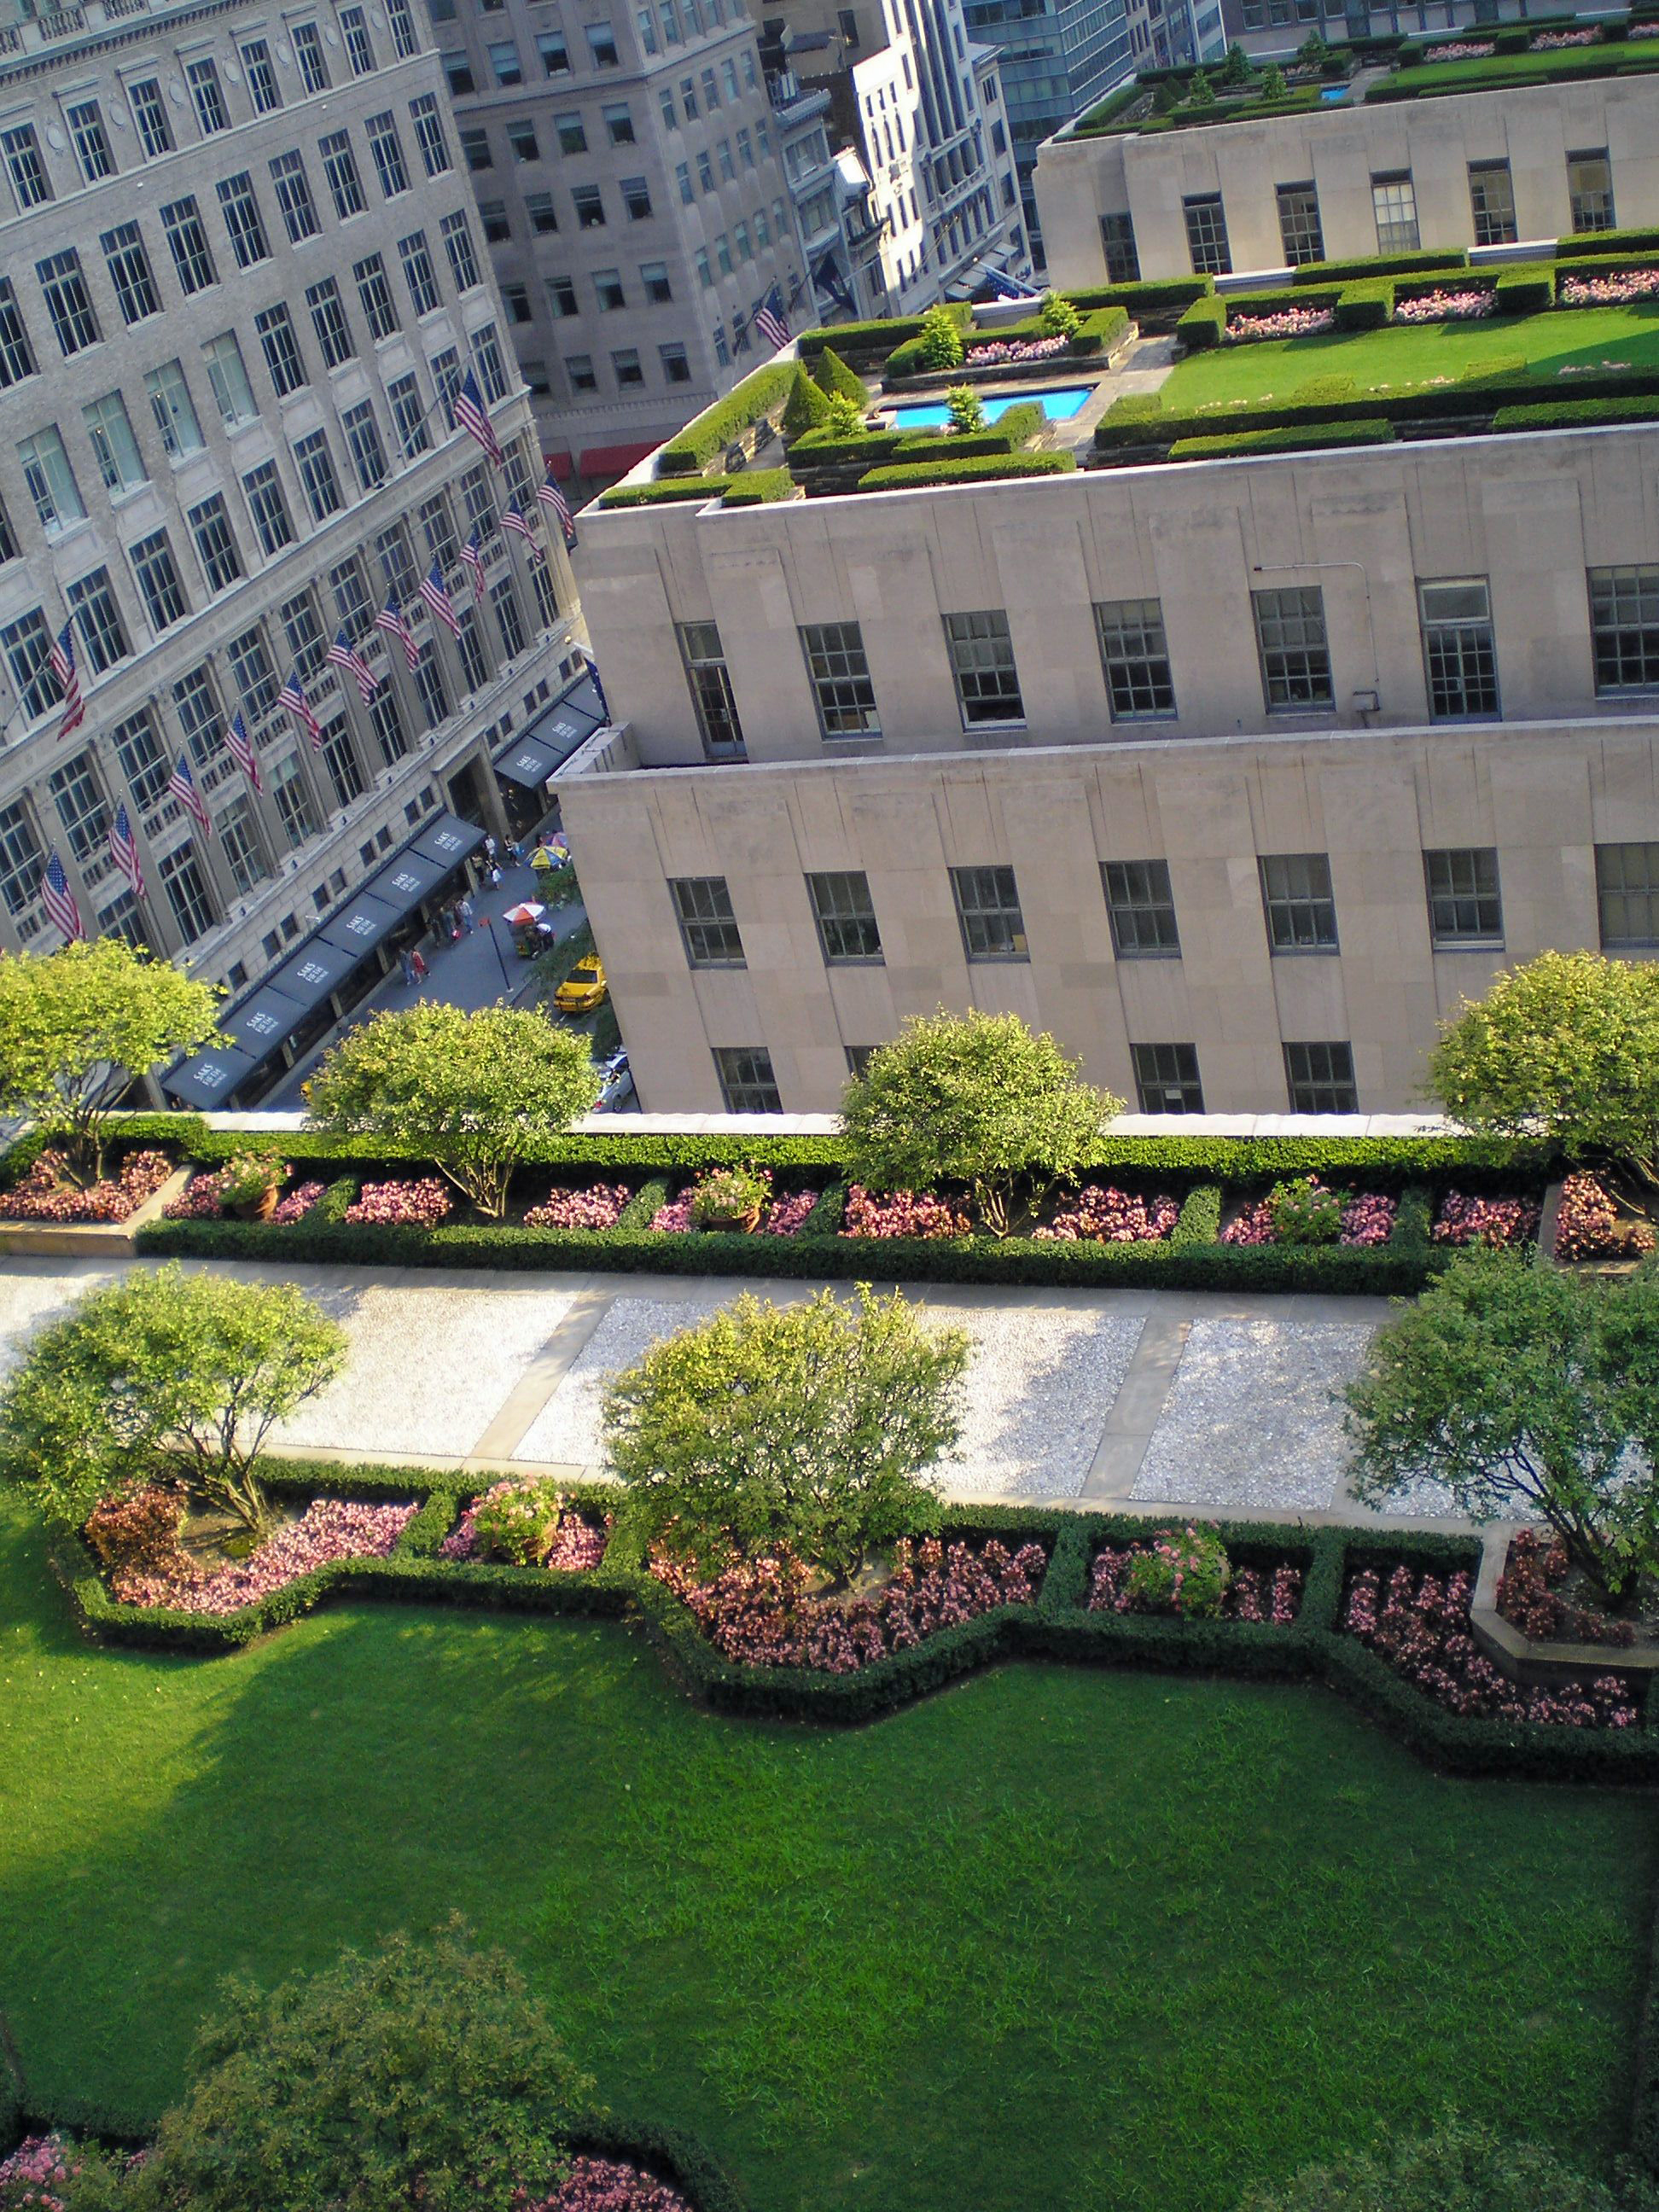 Rooftop Gardens Rockefeller Center NYC New York